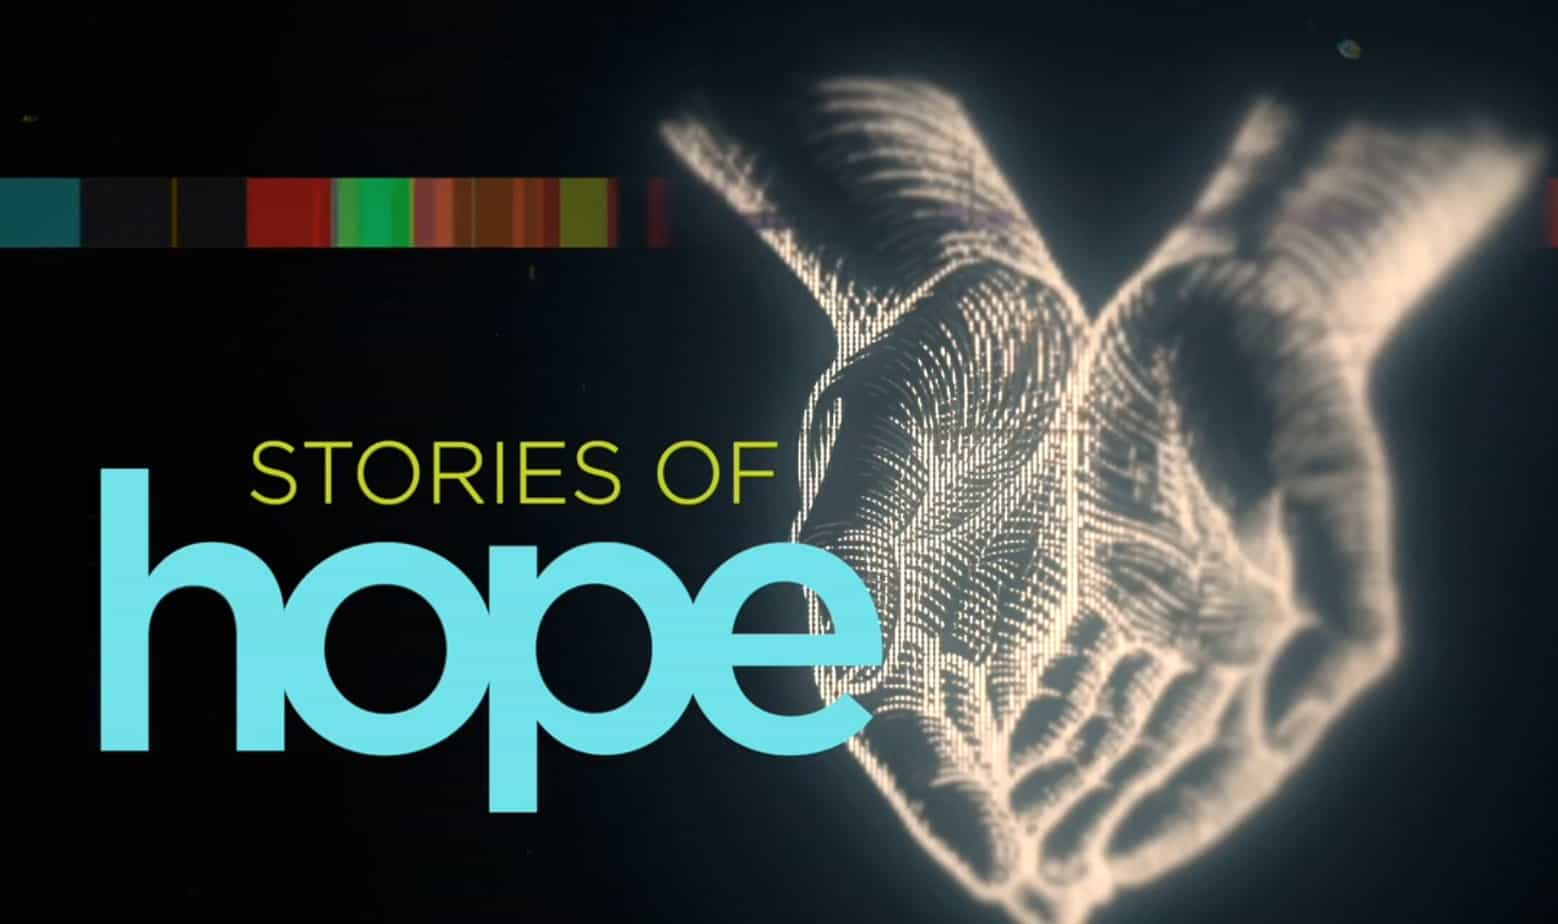 Watch Stories of Hope with amazing music and inspirational messages from top influencers